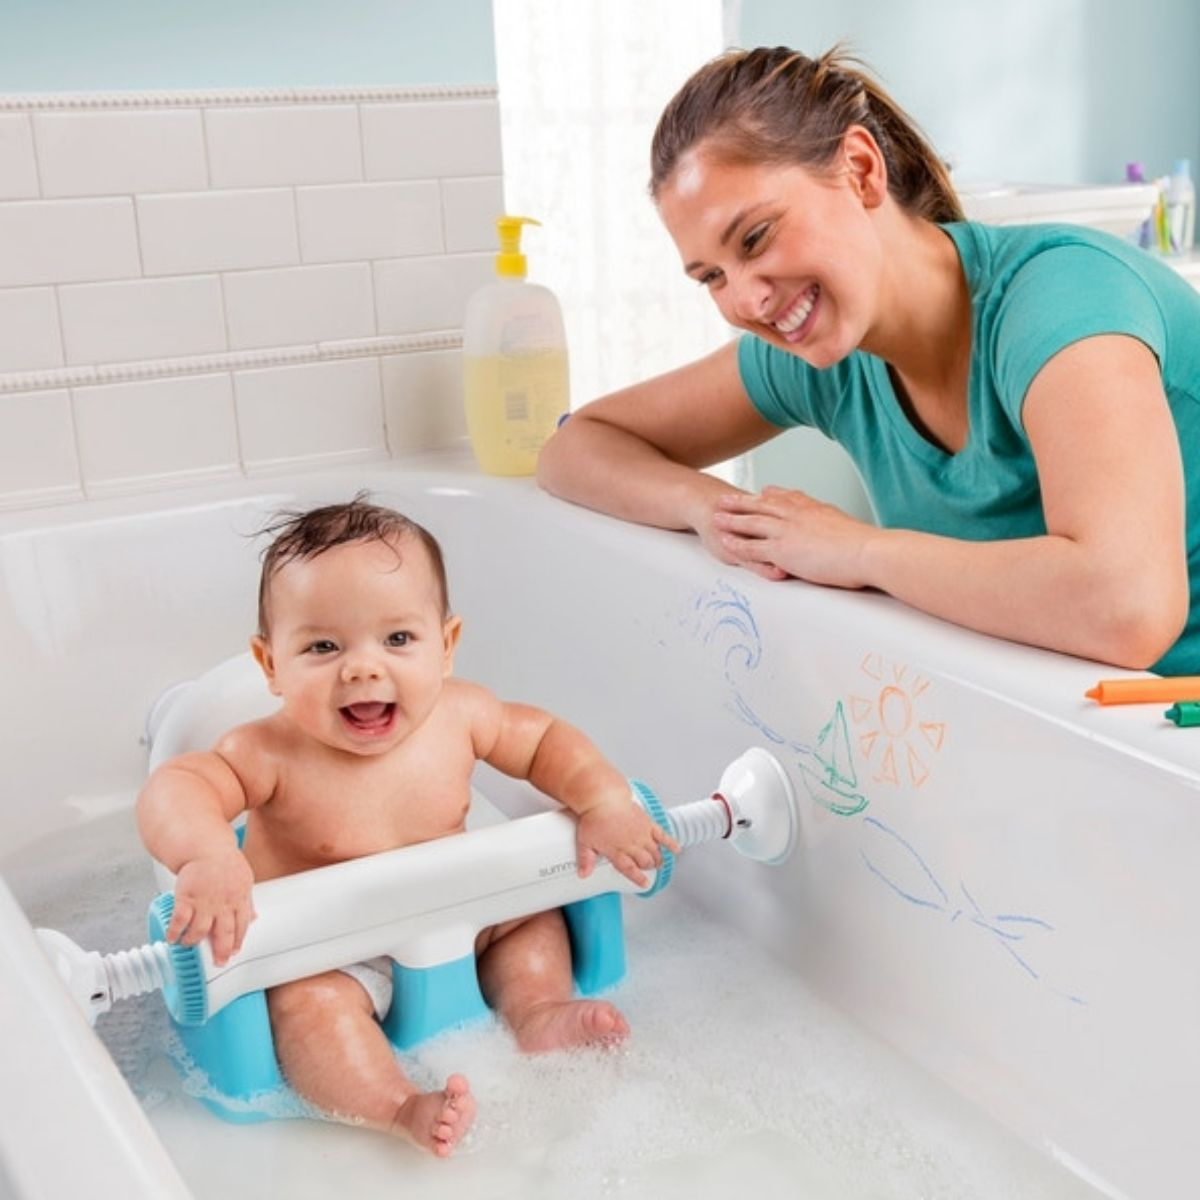 How Can I Get My Baby to Like Baths?